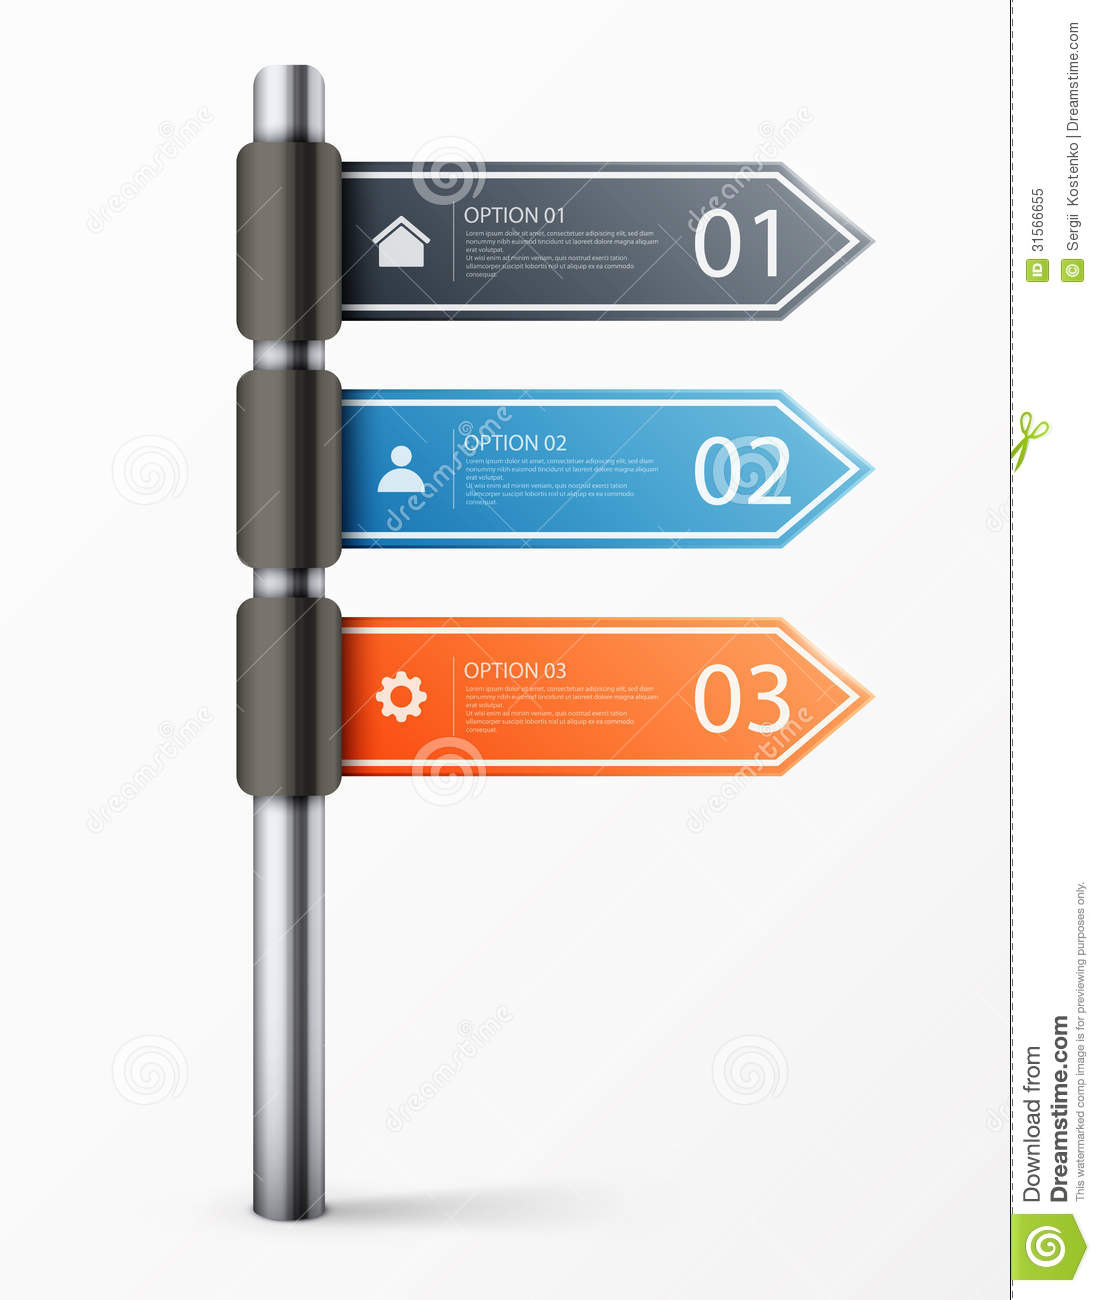 Modern road sign design template for infographics